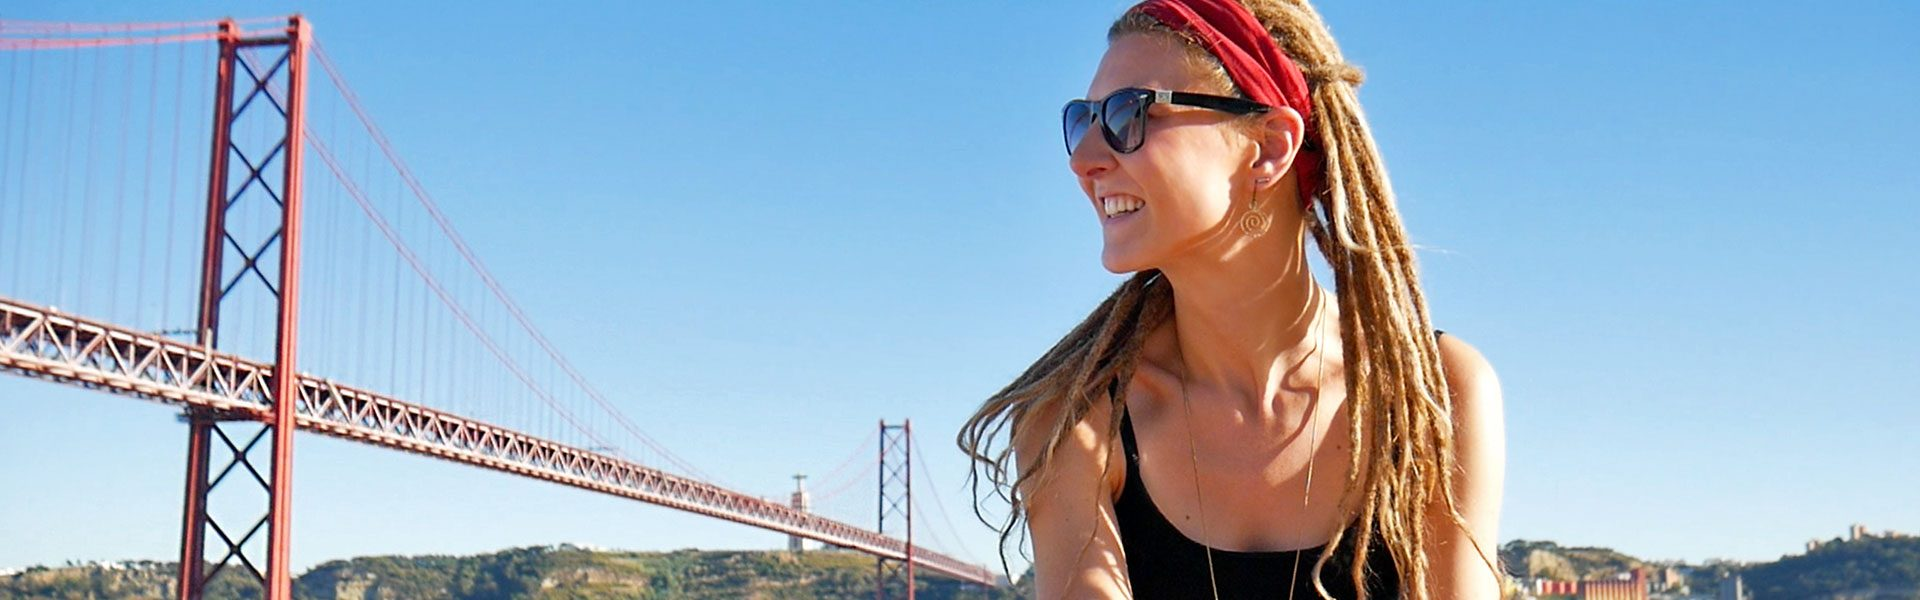 Rasta girl in front of Ponte 25 de Abril and Cristo Redentor in Lisbon, Portugal